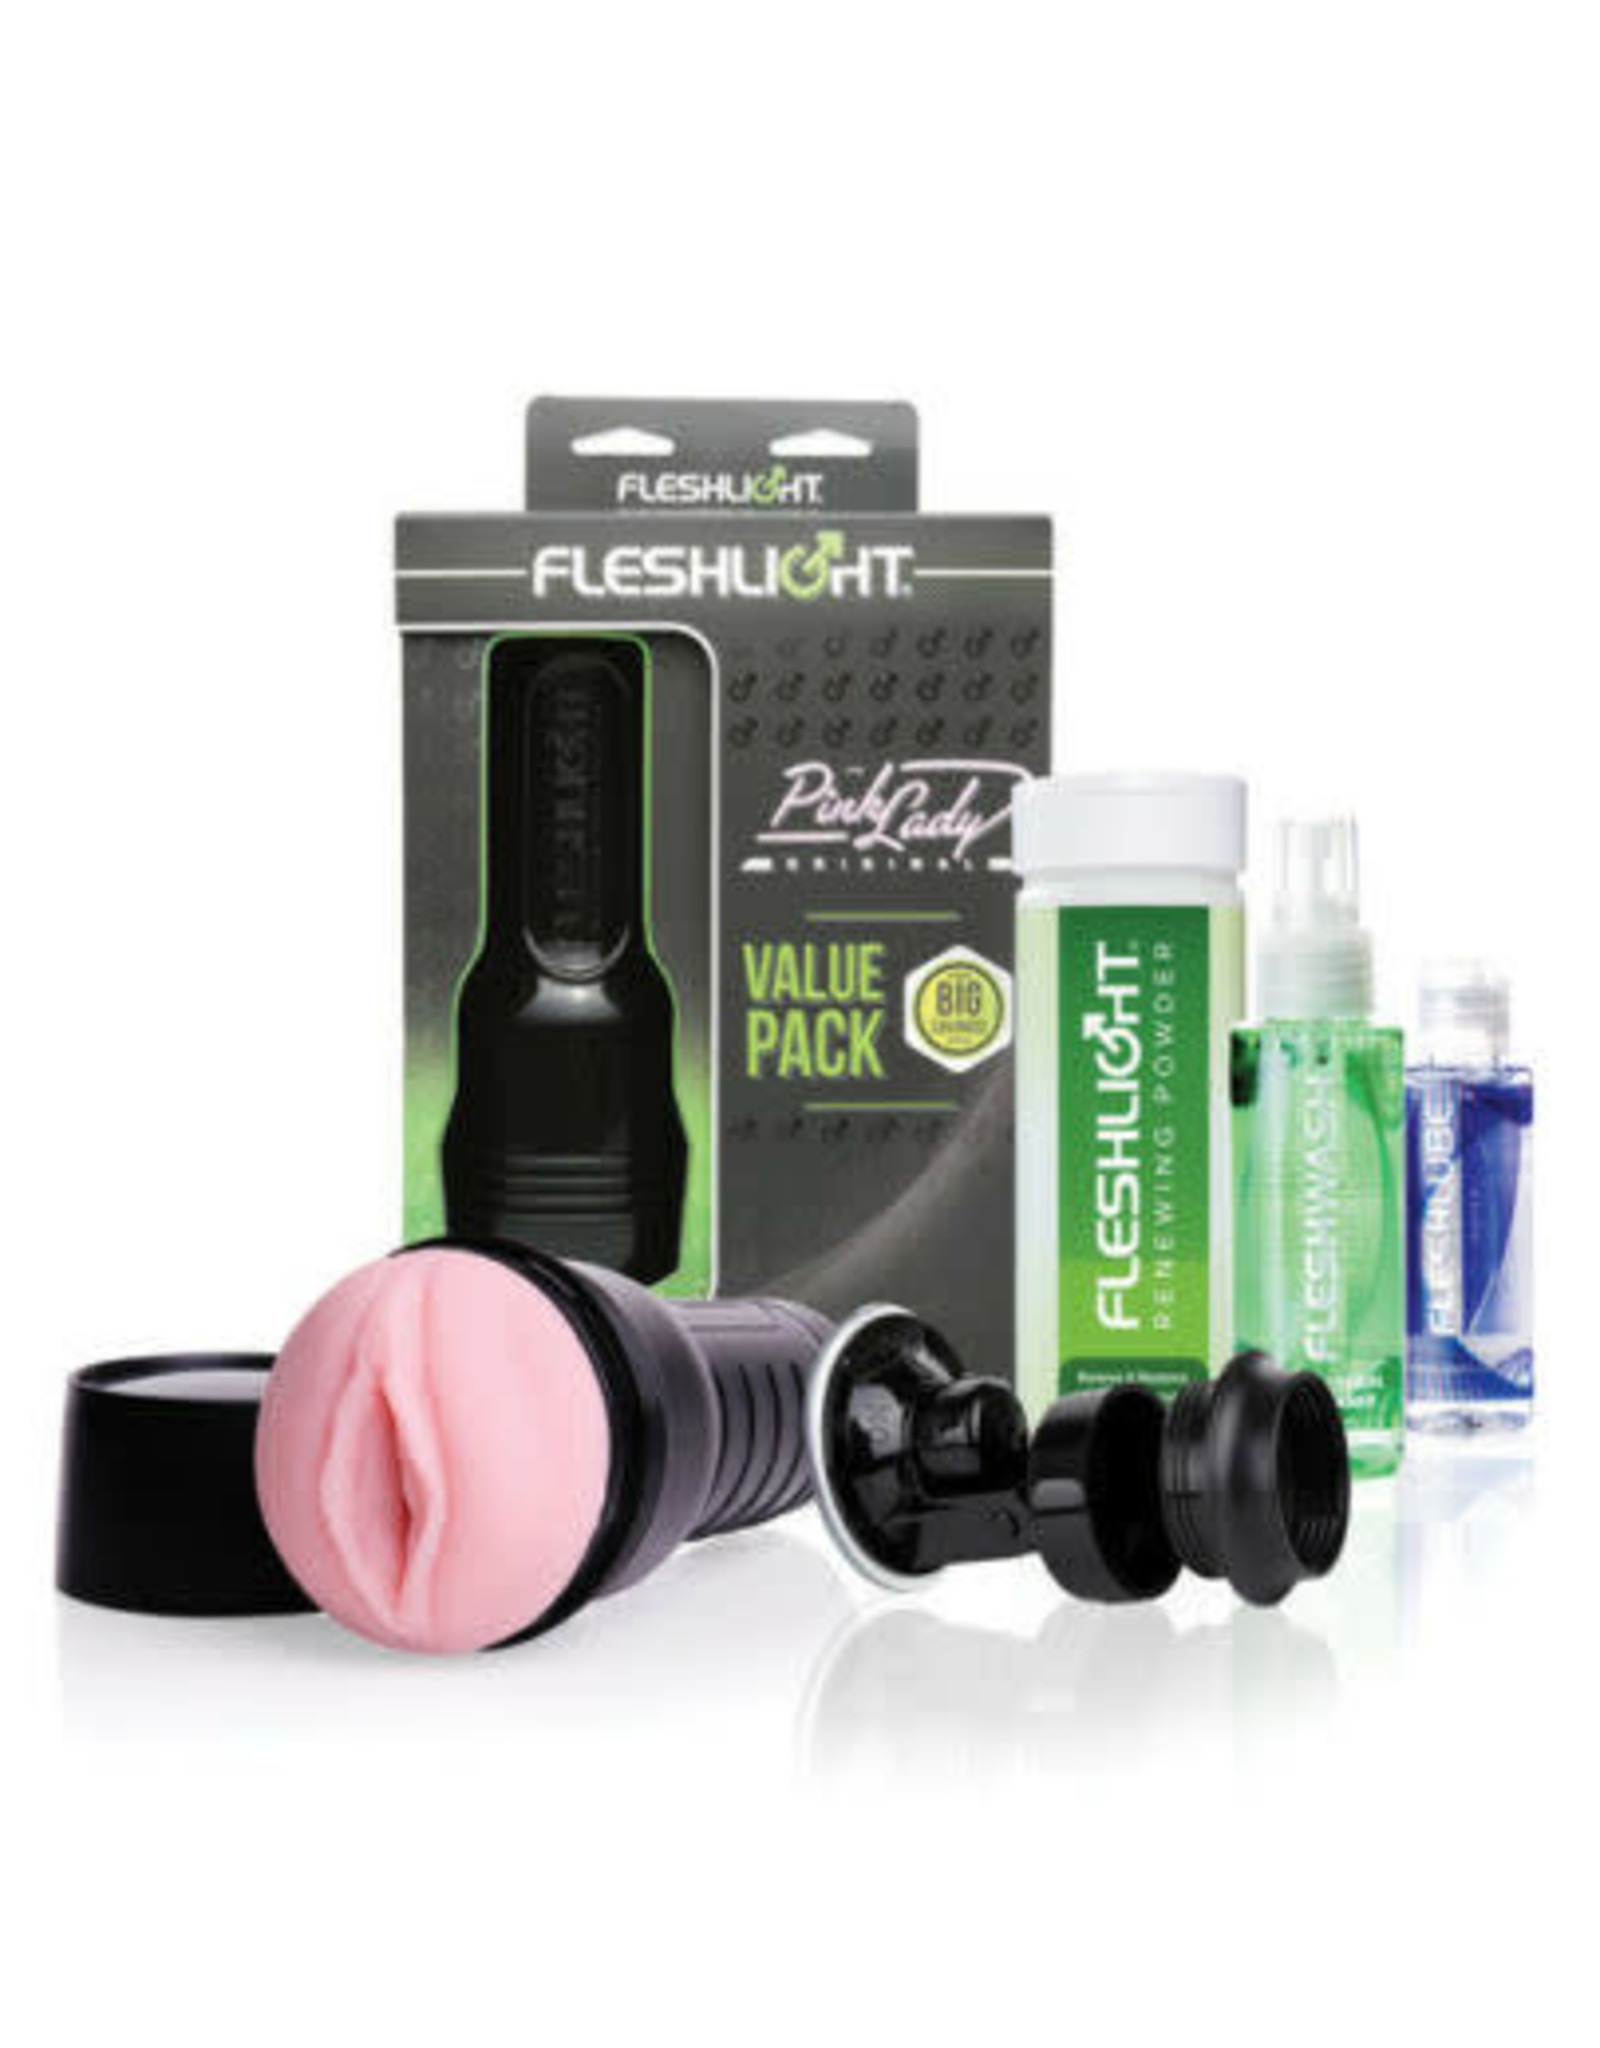 FLESHLIGHT - PINK LADY - VALUE PACK